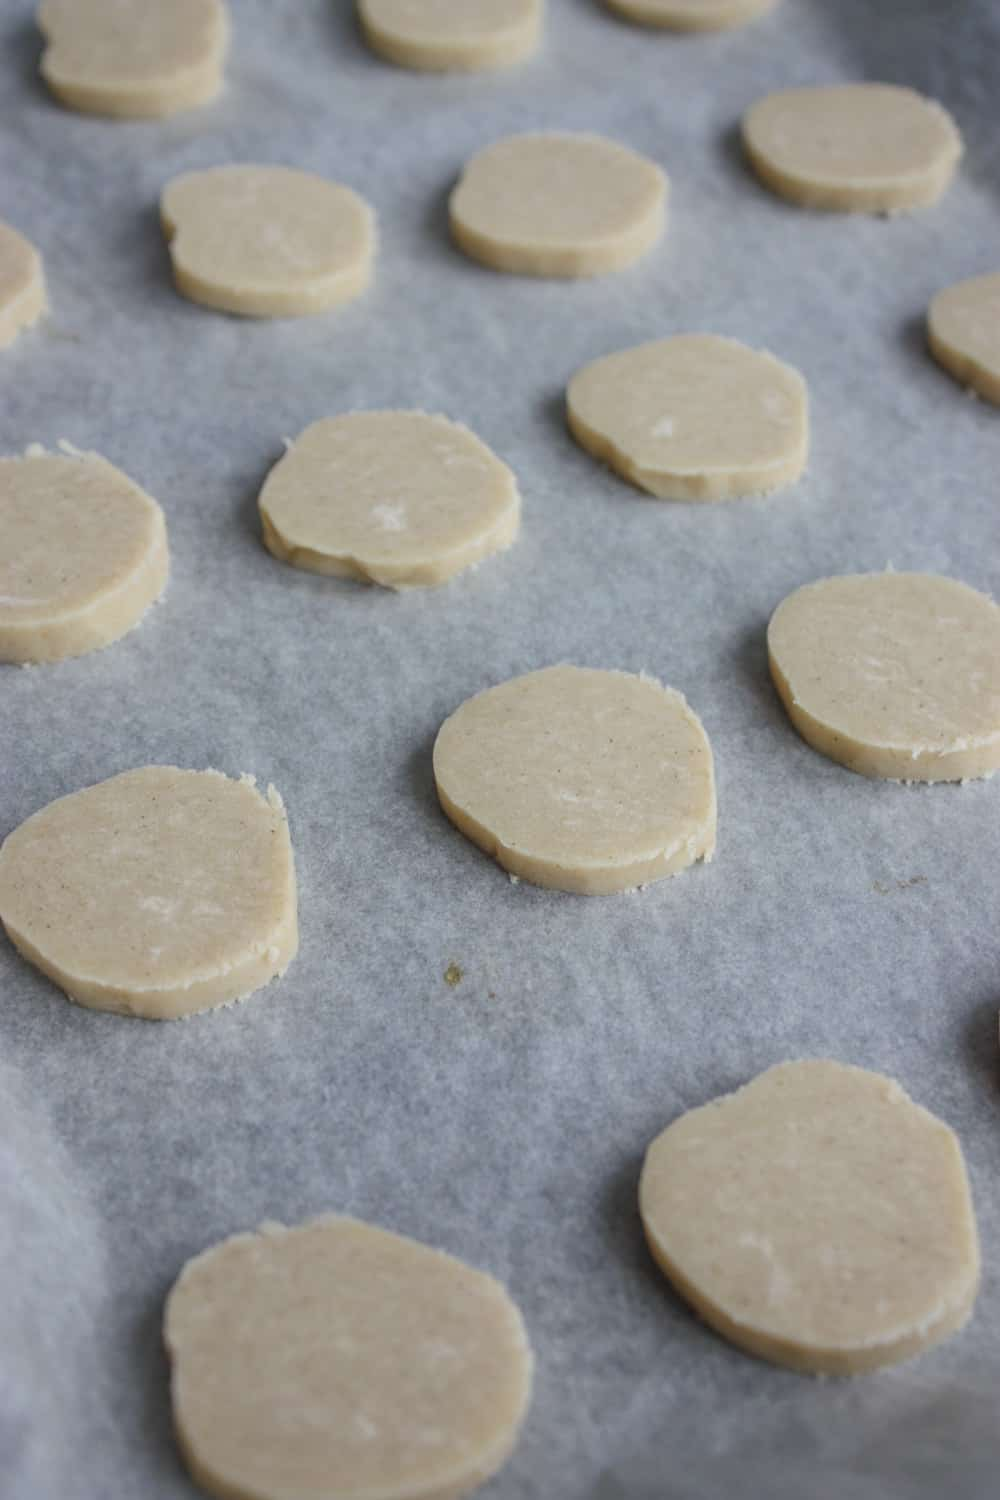 Placing cookies on parchment paper lined baking sheet.